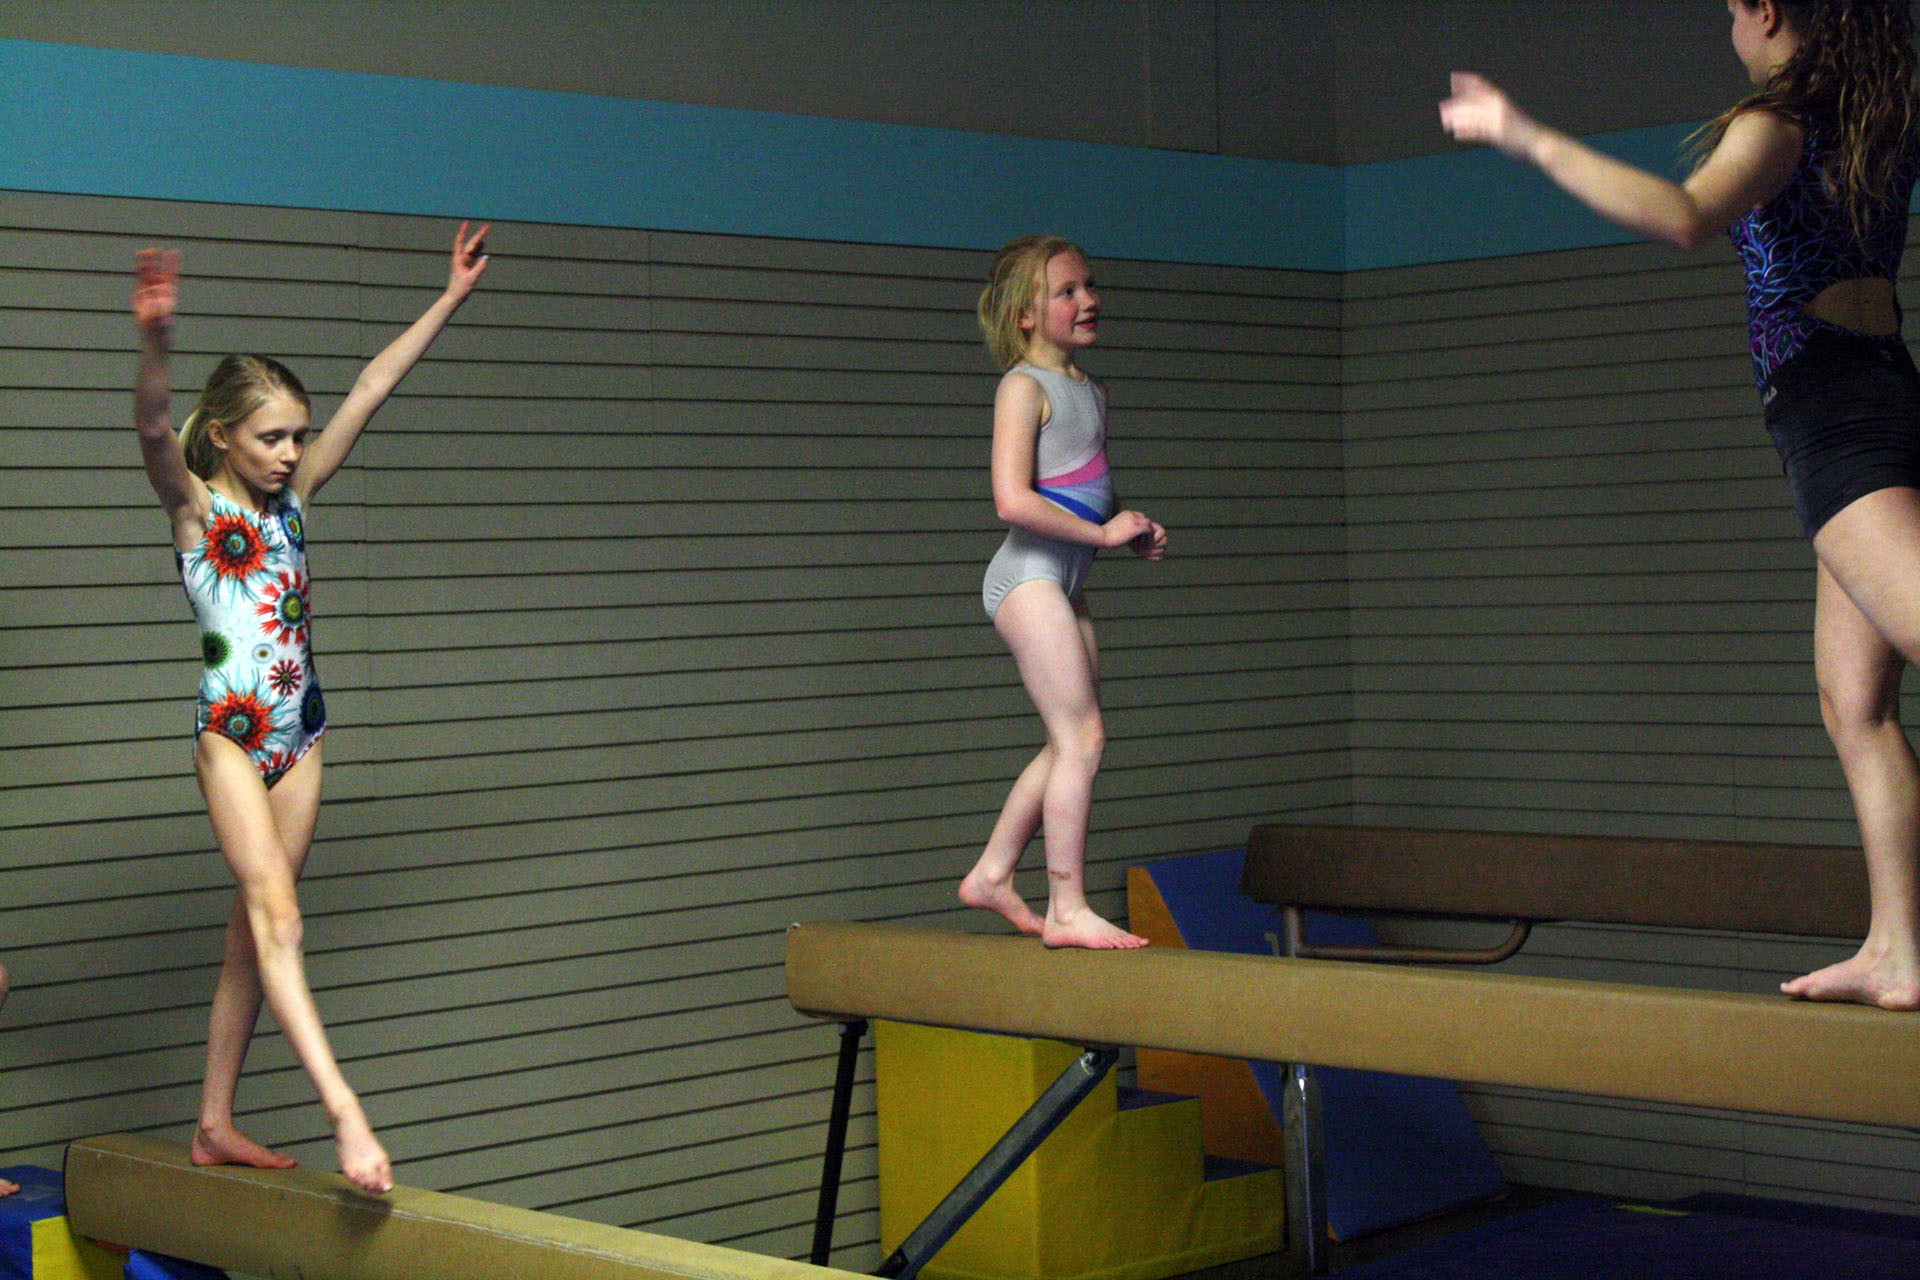 <strong>Gwendolyn Garvin, 8, left, and Allie Shepherd, 7, practice their balance beam skills. Each girl went back and forth multiple times, practicing different elements of their beam routines. Garvin scored 9.1 on her beam routine, which earned her the top spot for her age group. Shepherd scored a 9.25 for her beam routine, earning her a gold medal.</strong>